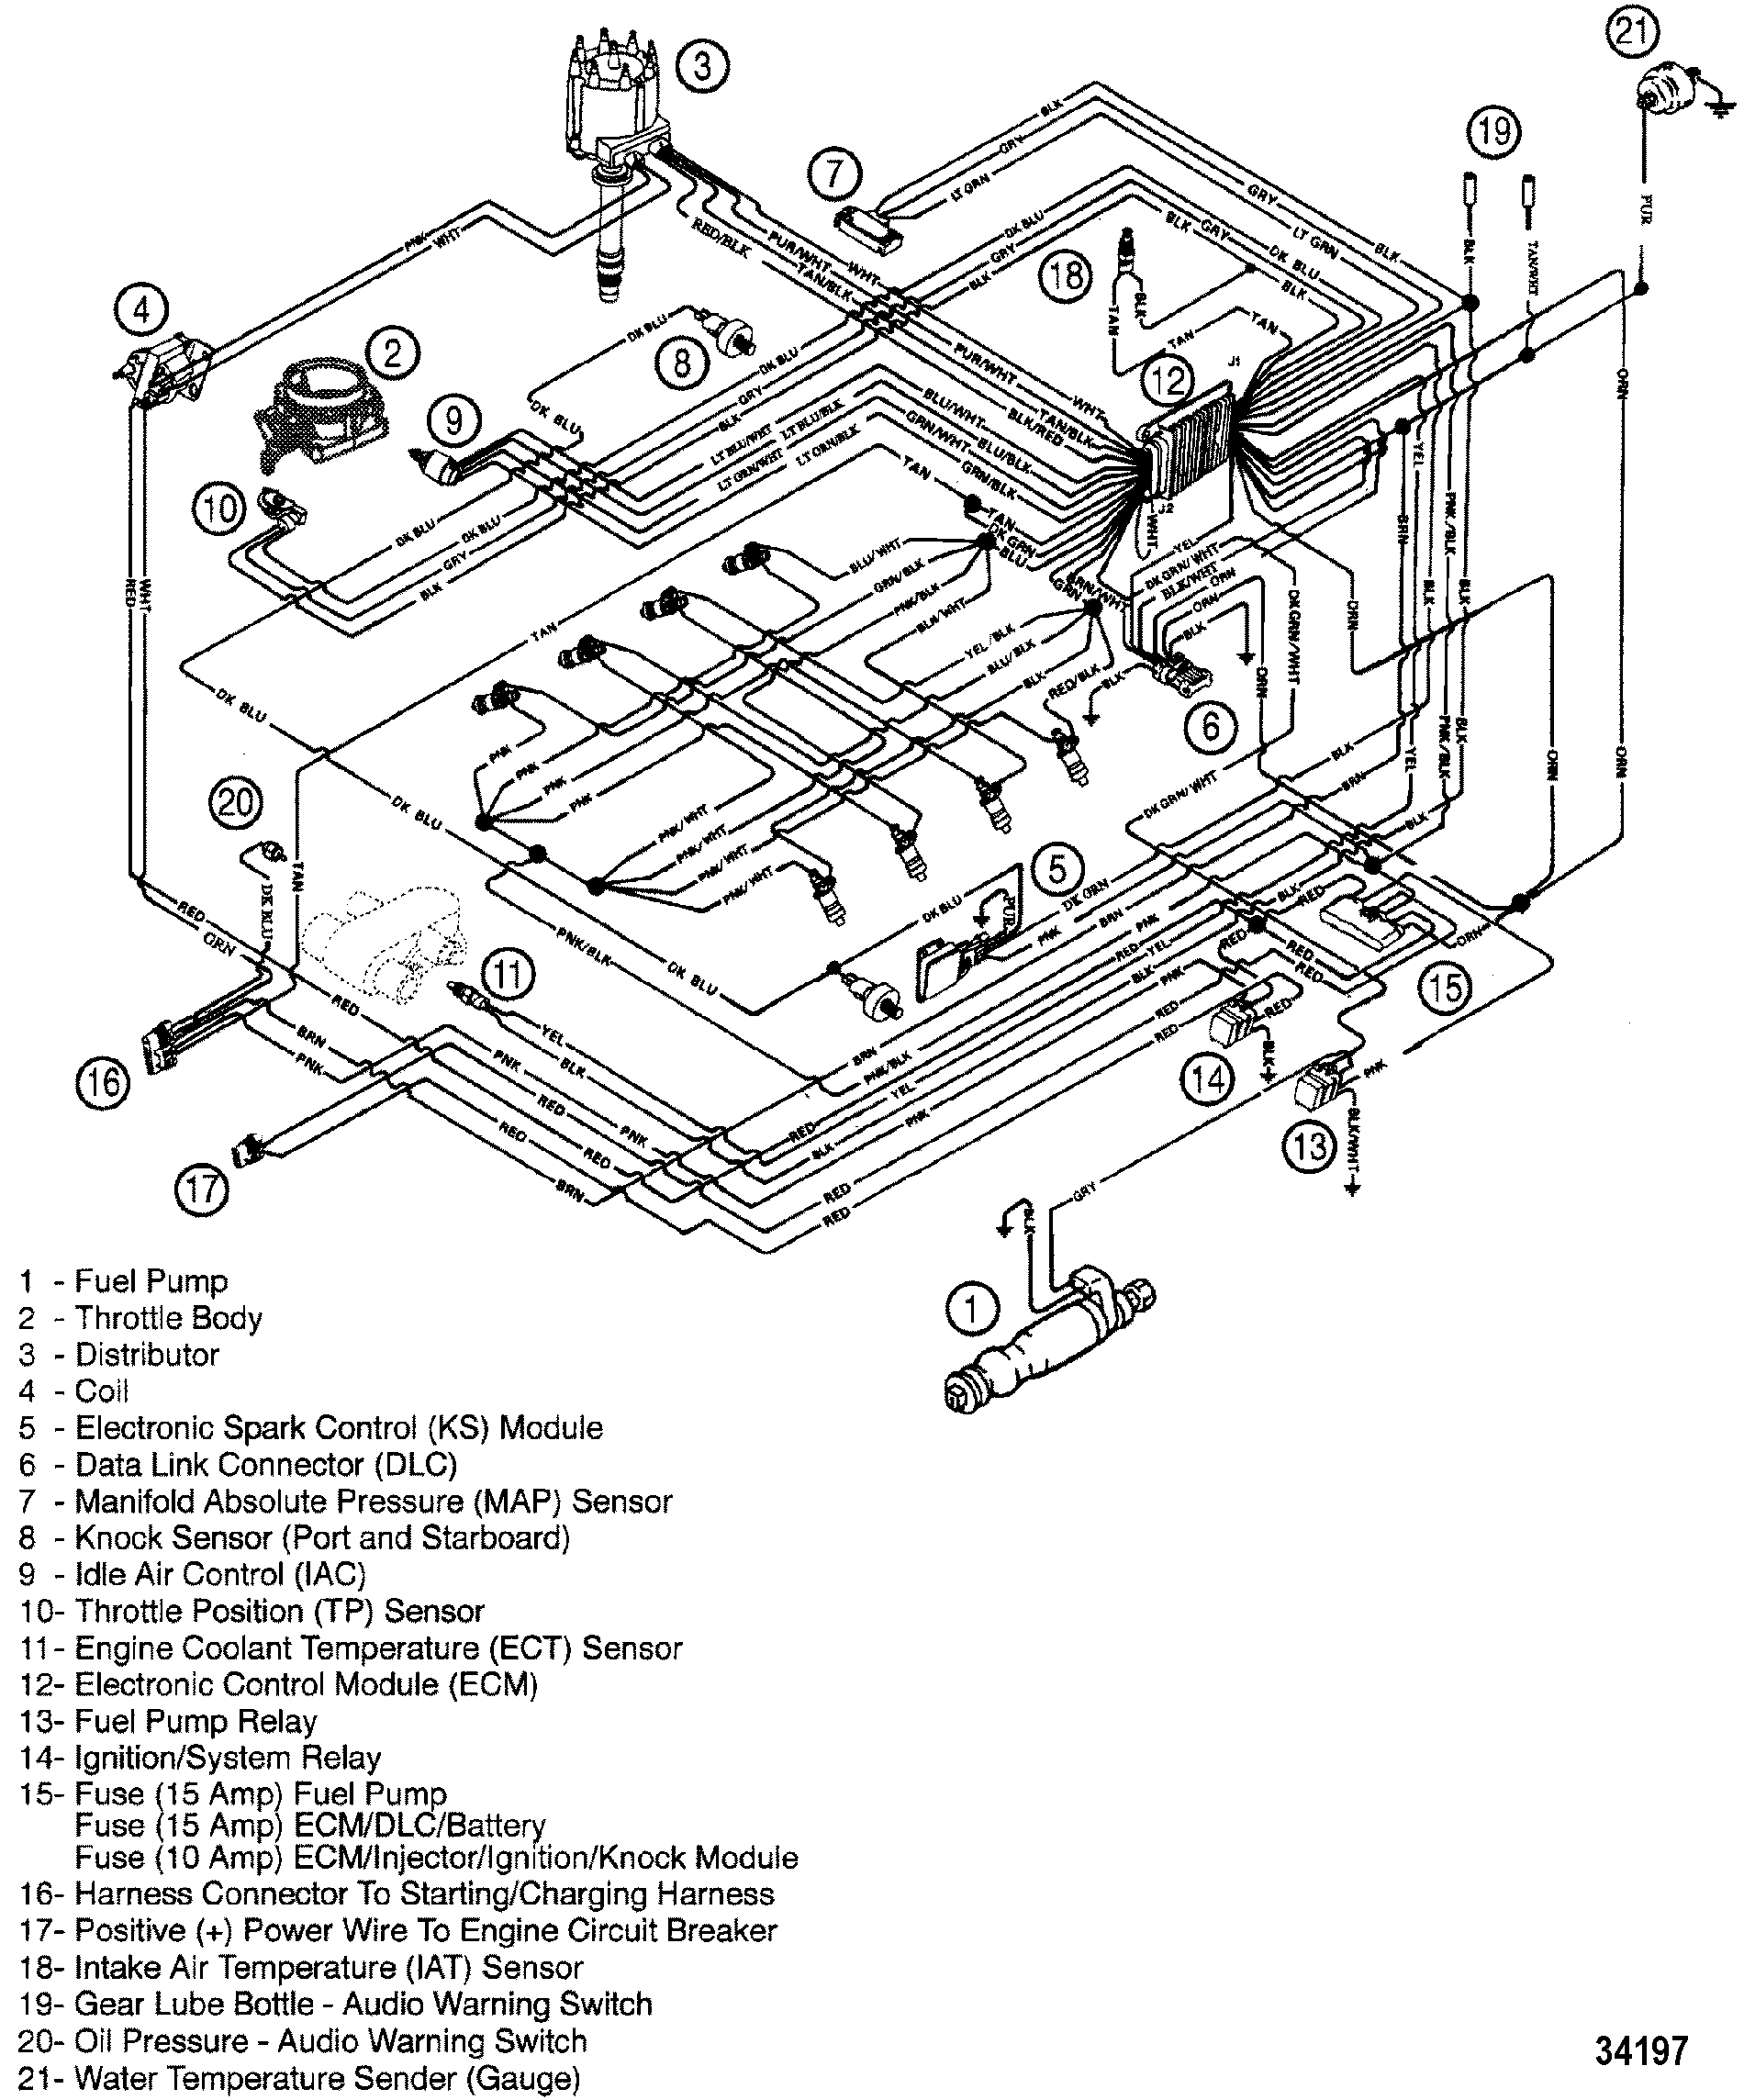 34197 cp performance wiring harness (efi) 1996 mercruiser 5.7 wiring diagram at panicattacktreatment.co